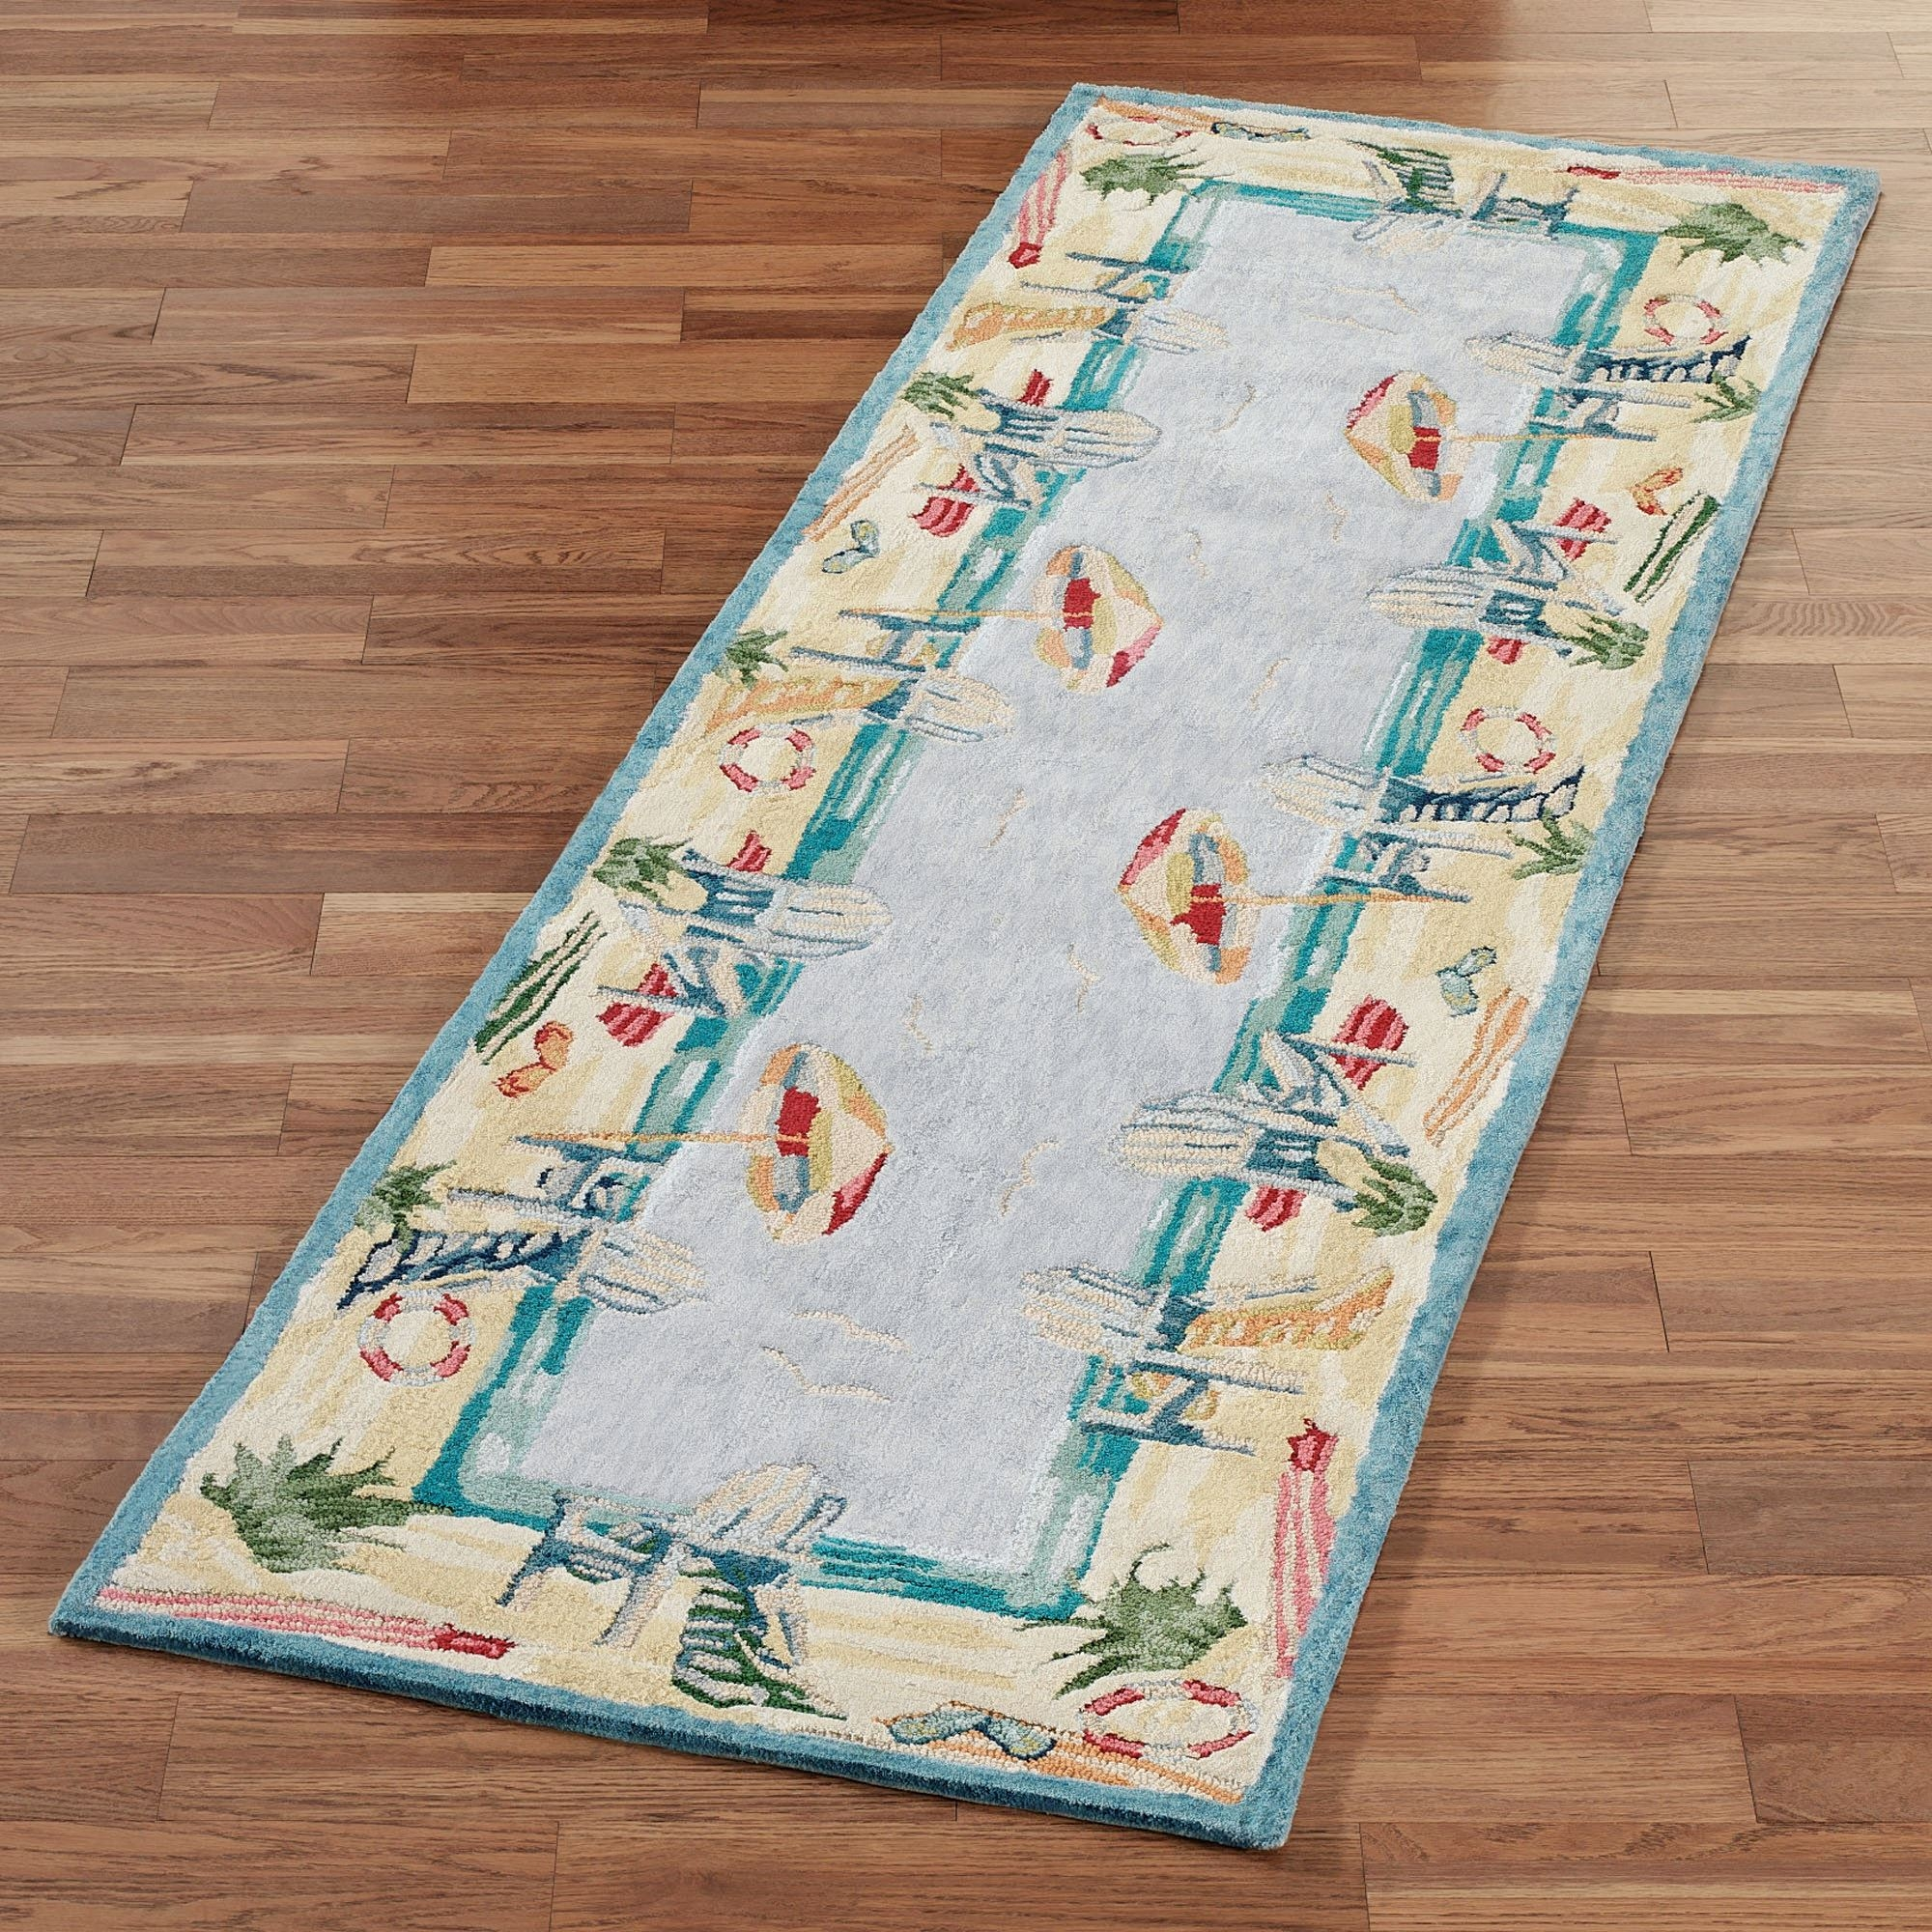 and rug full ideas for grey beautiful rectangle pope rugs in mustard fascinating astonishing beach sandstorm north design brown inspirations picture sale myrtle letter online benedict area pretty size natural costco with pictures fire of